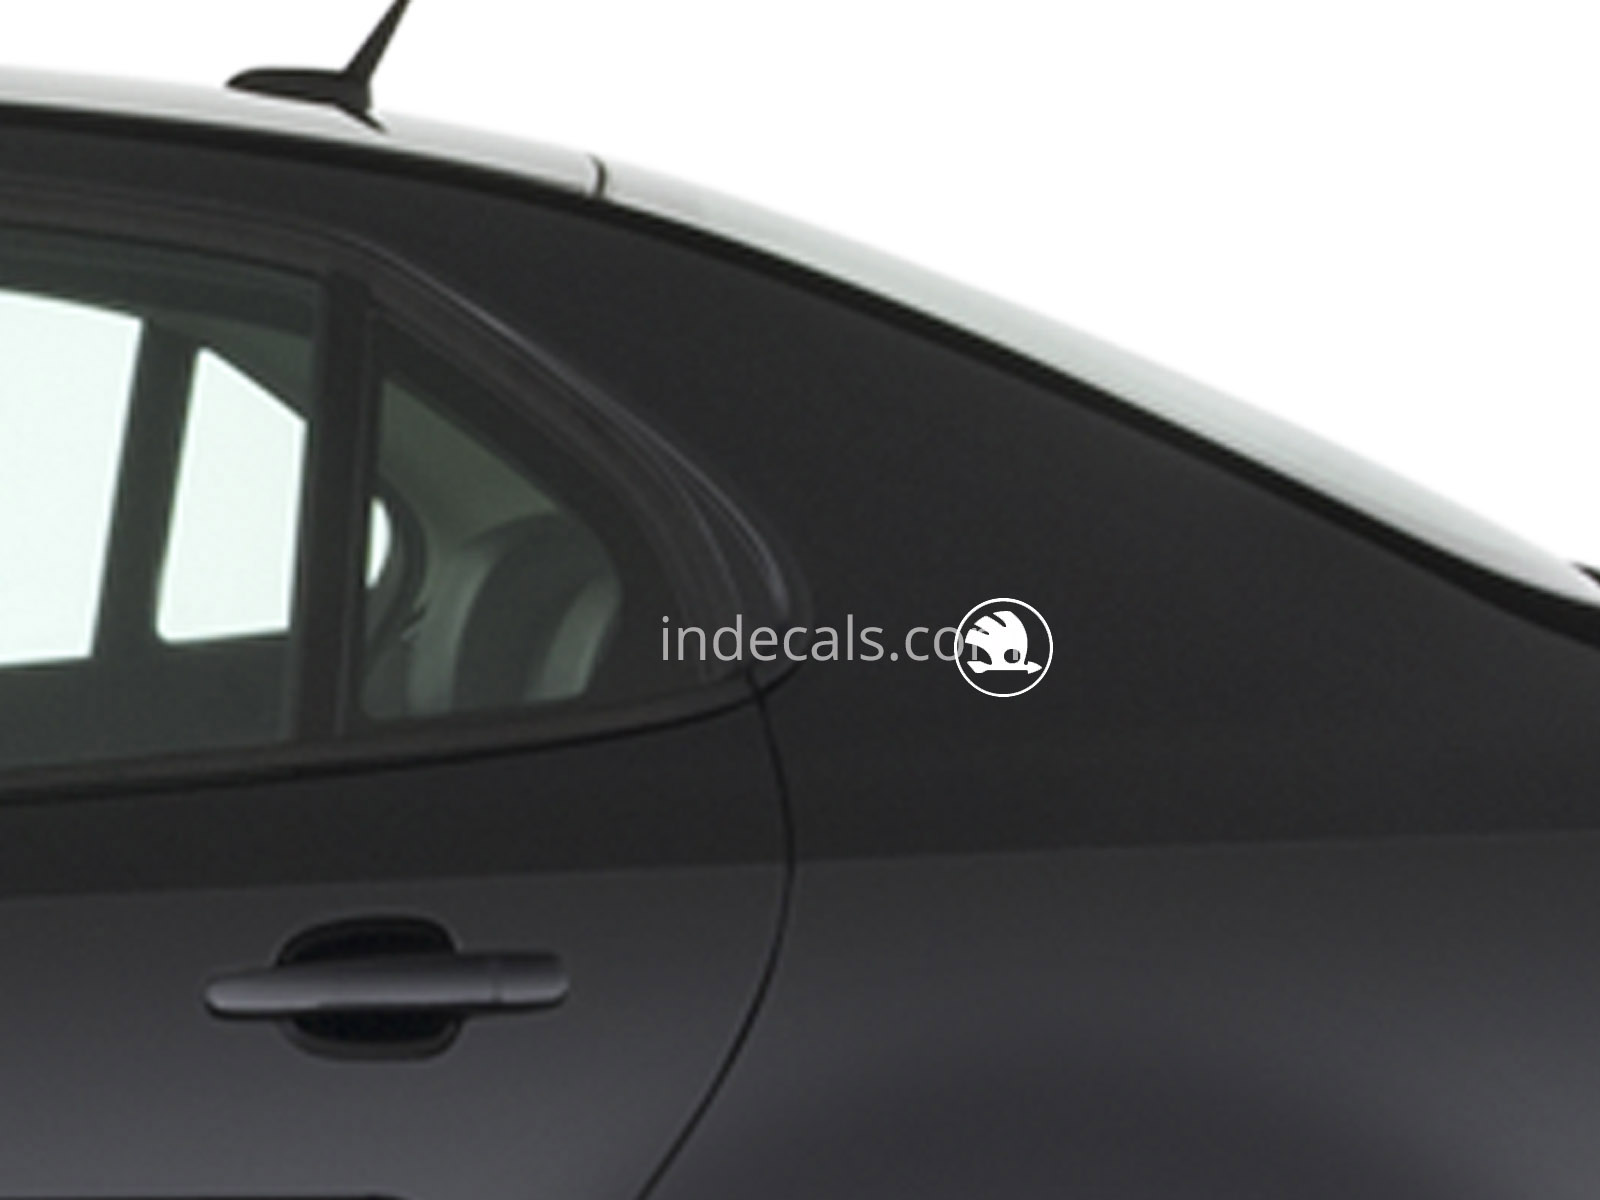 3 x Skoda Stickers for Rear Wing - White